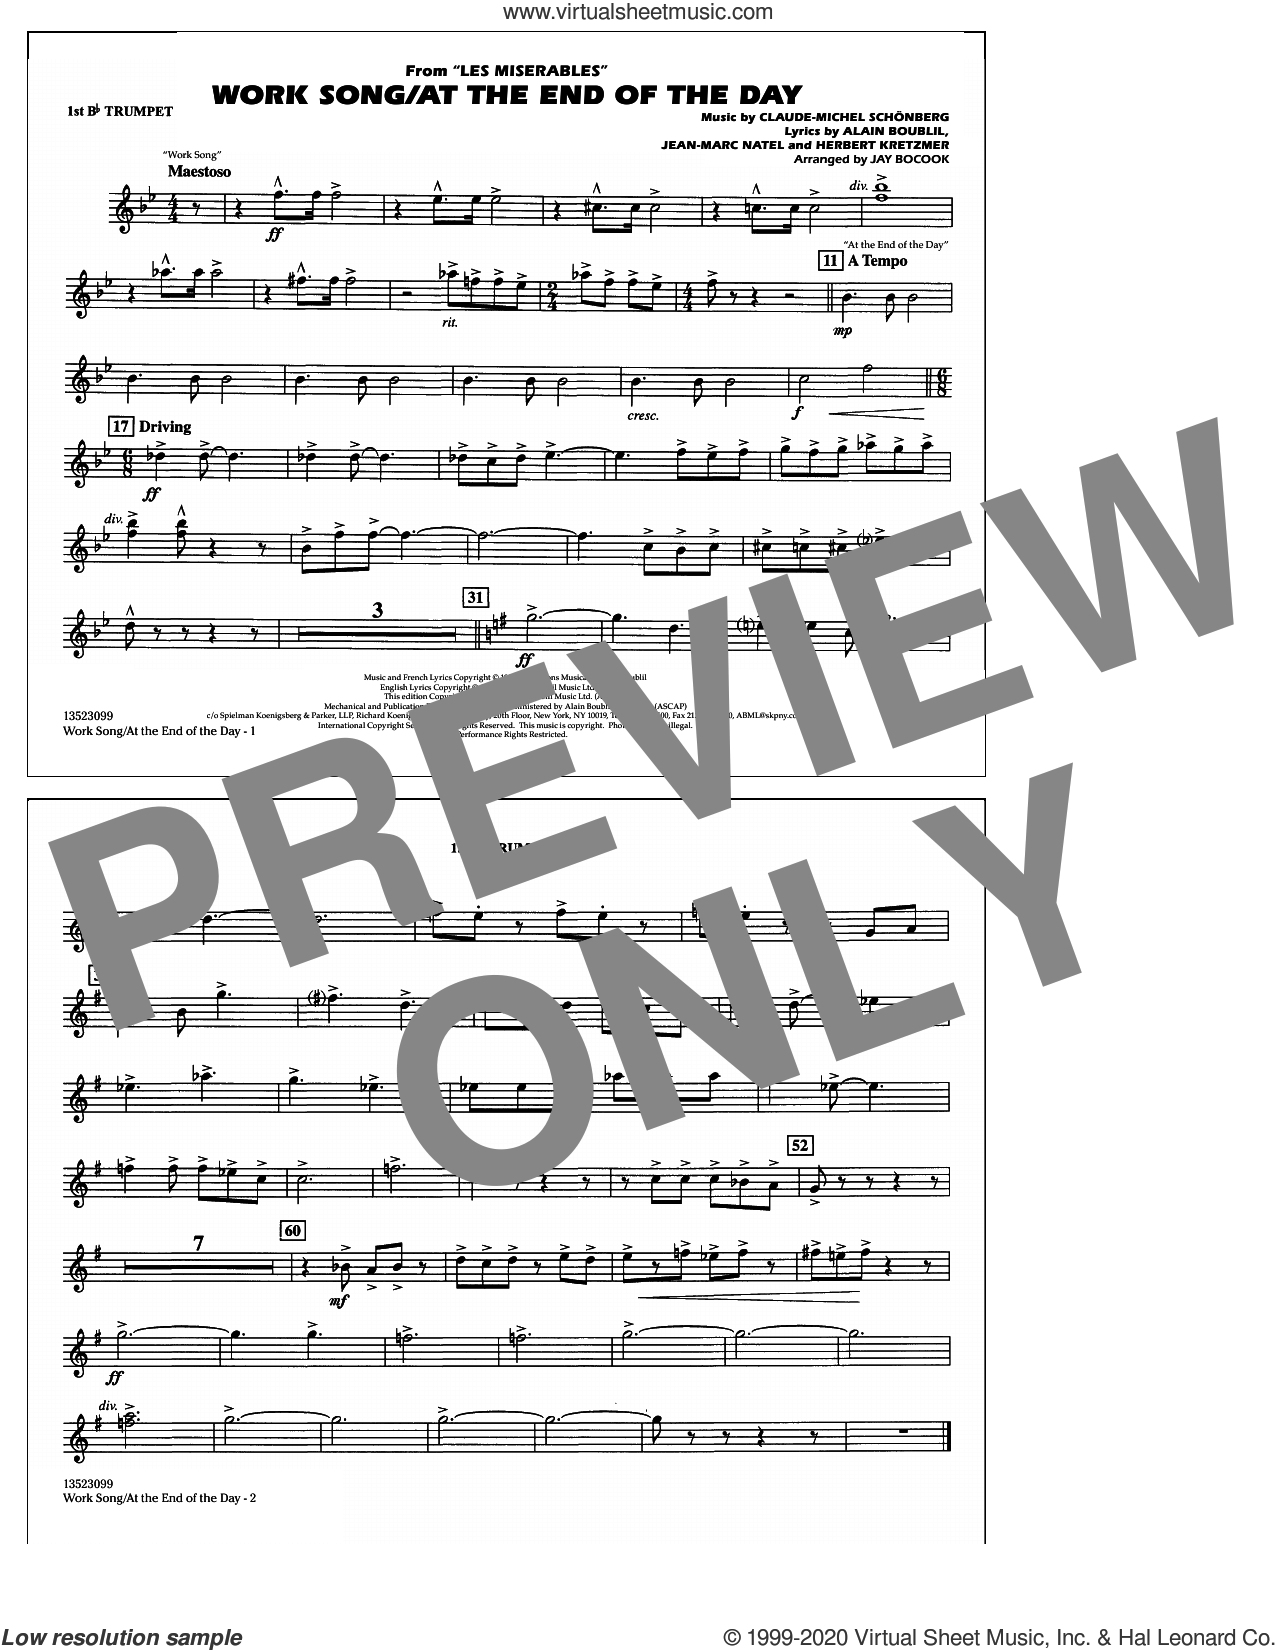 Work Song/At the End of the Day (Les Miserables) (arr. Jay Bocook) sheet music for marching band (1st Bb trumpet) by Claude-Michel Schonberg, Jay Bocook, Alain Boublil, Boublil & Schonberg, Herbert Kretzmer and Jean-Marc Natel, intermediate skill level